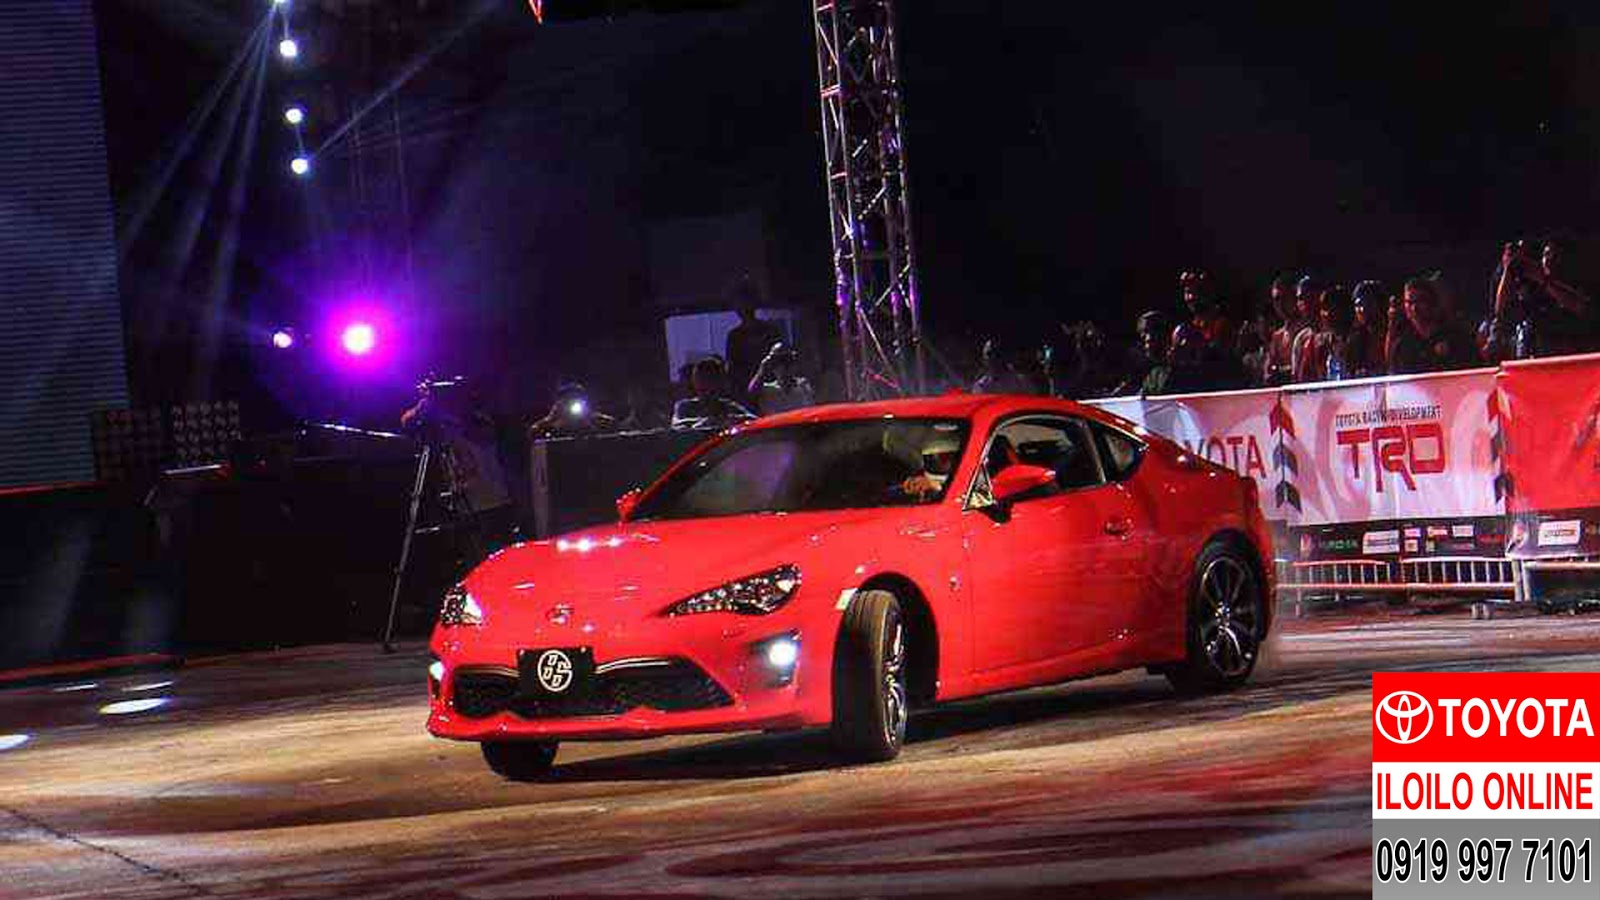 Months after its debut at the 2016 new york international auto show the updated 2017 toyota 86 is now here in the philippines it sports a fresher look